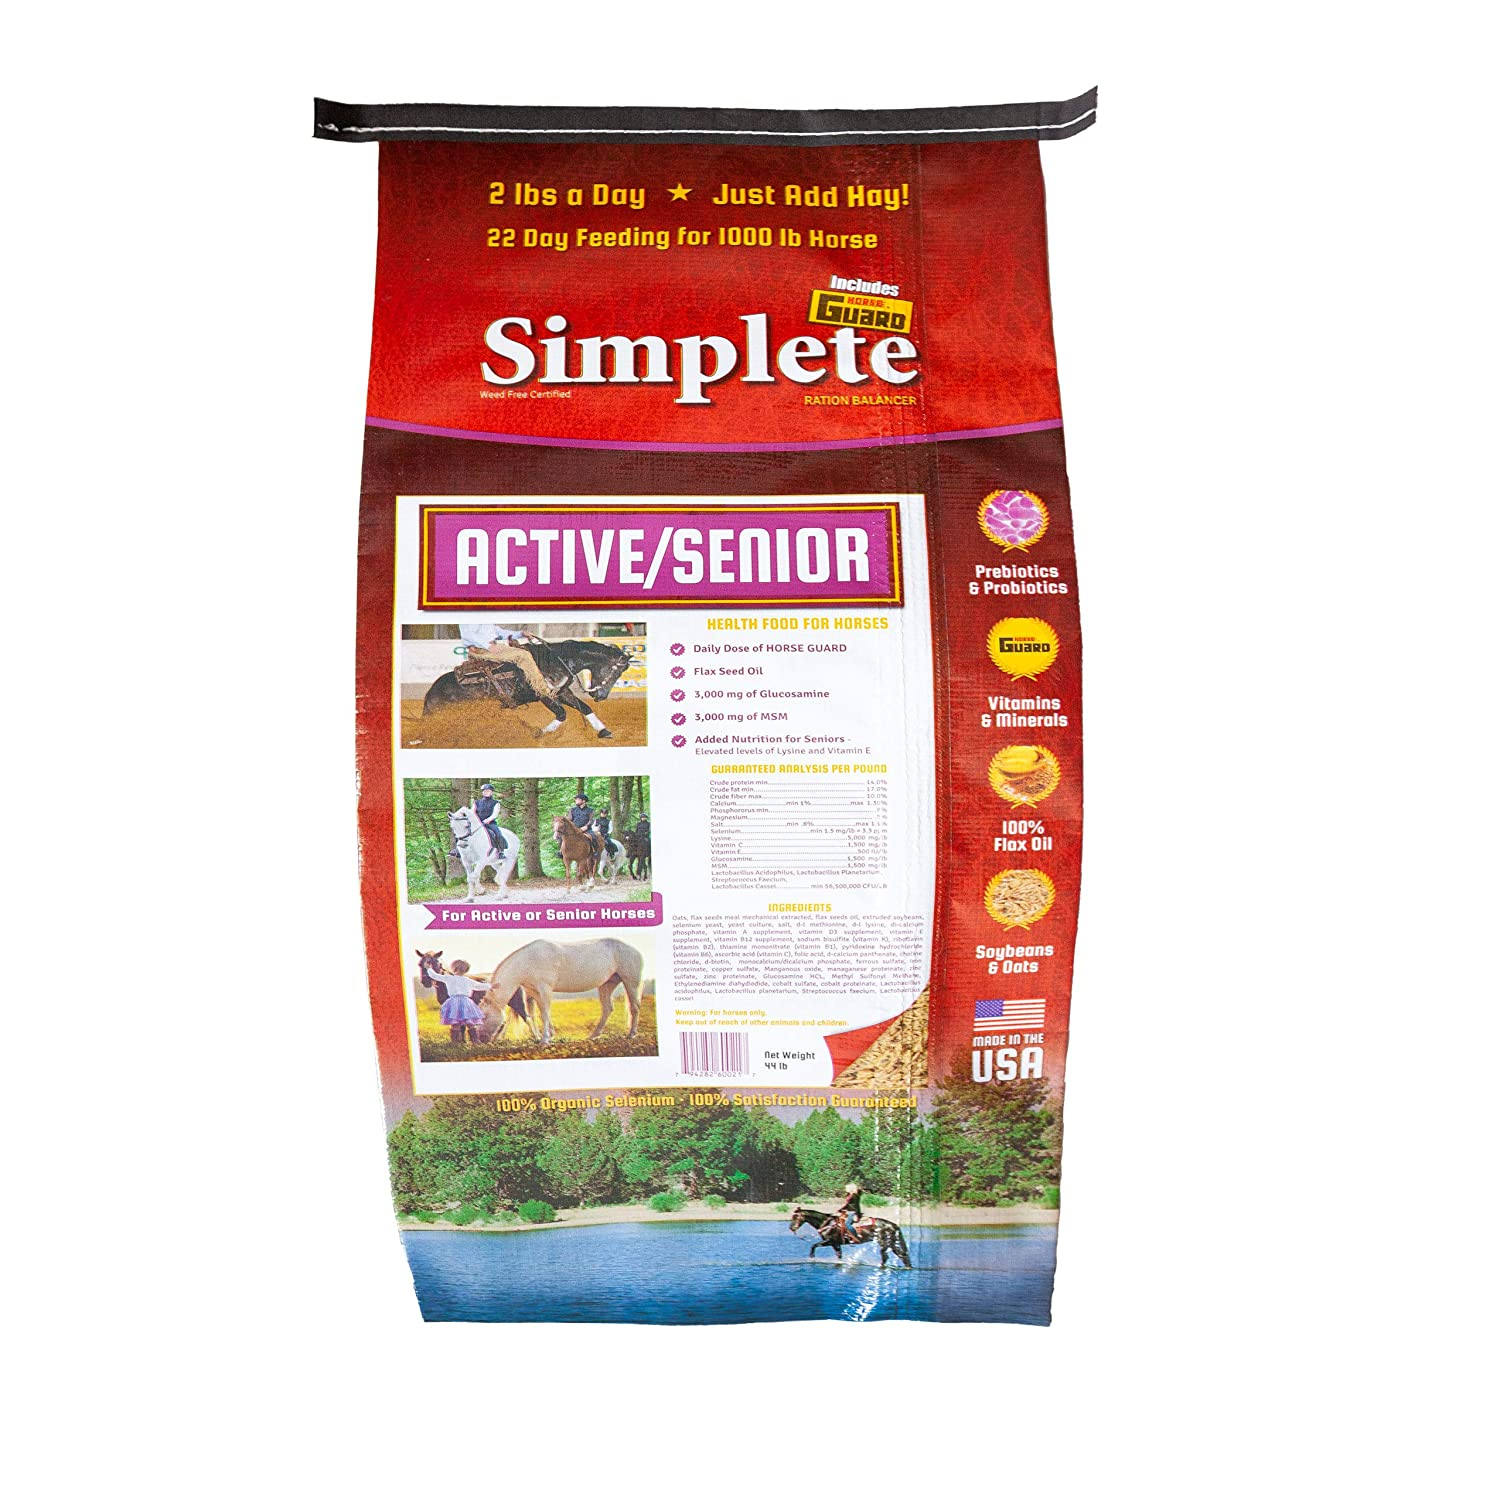 Horse Guard Simplete Senior/Active | Complete Equine Nutritional Food Supplement |Prevents Mineral and Vitamin Deficiencies | Helps in Digestion, Inflammation and Malnutrition | 44lb – 22 Day Supply